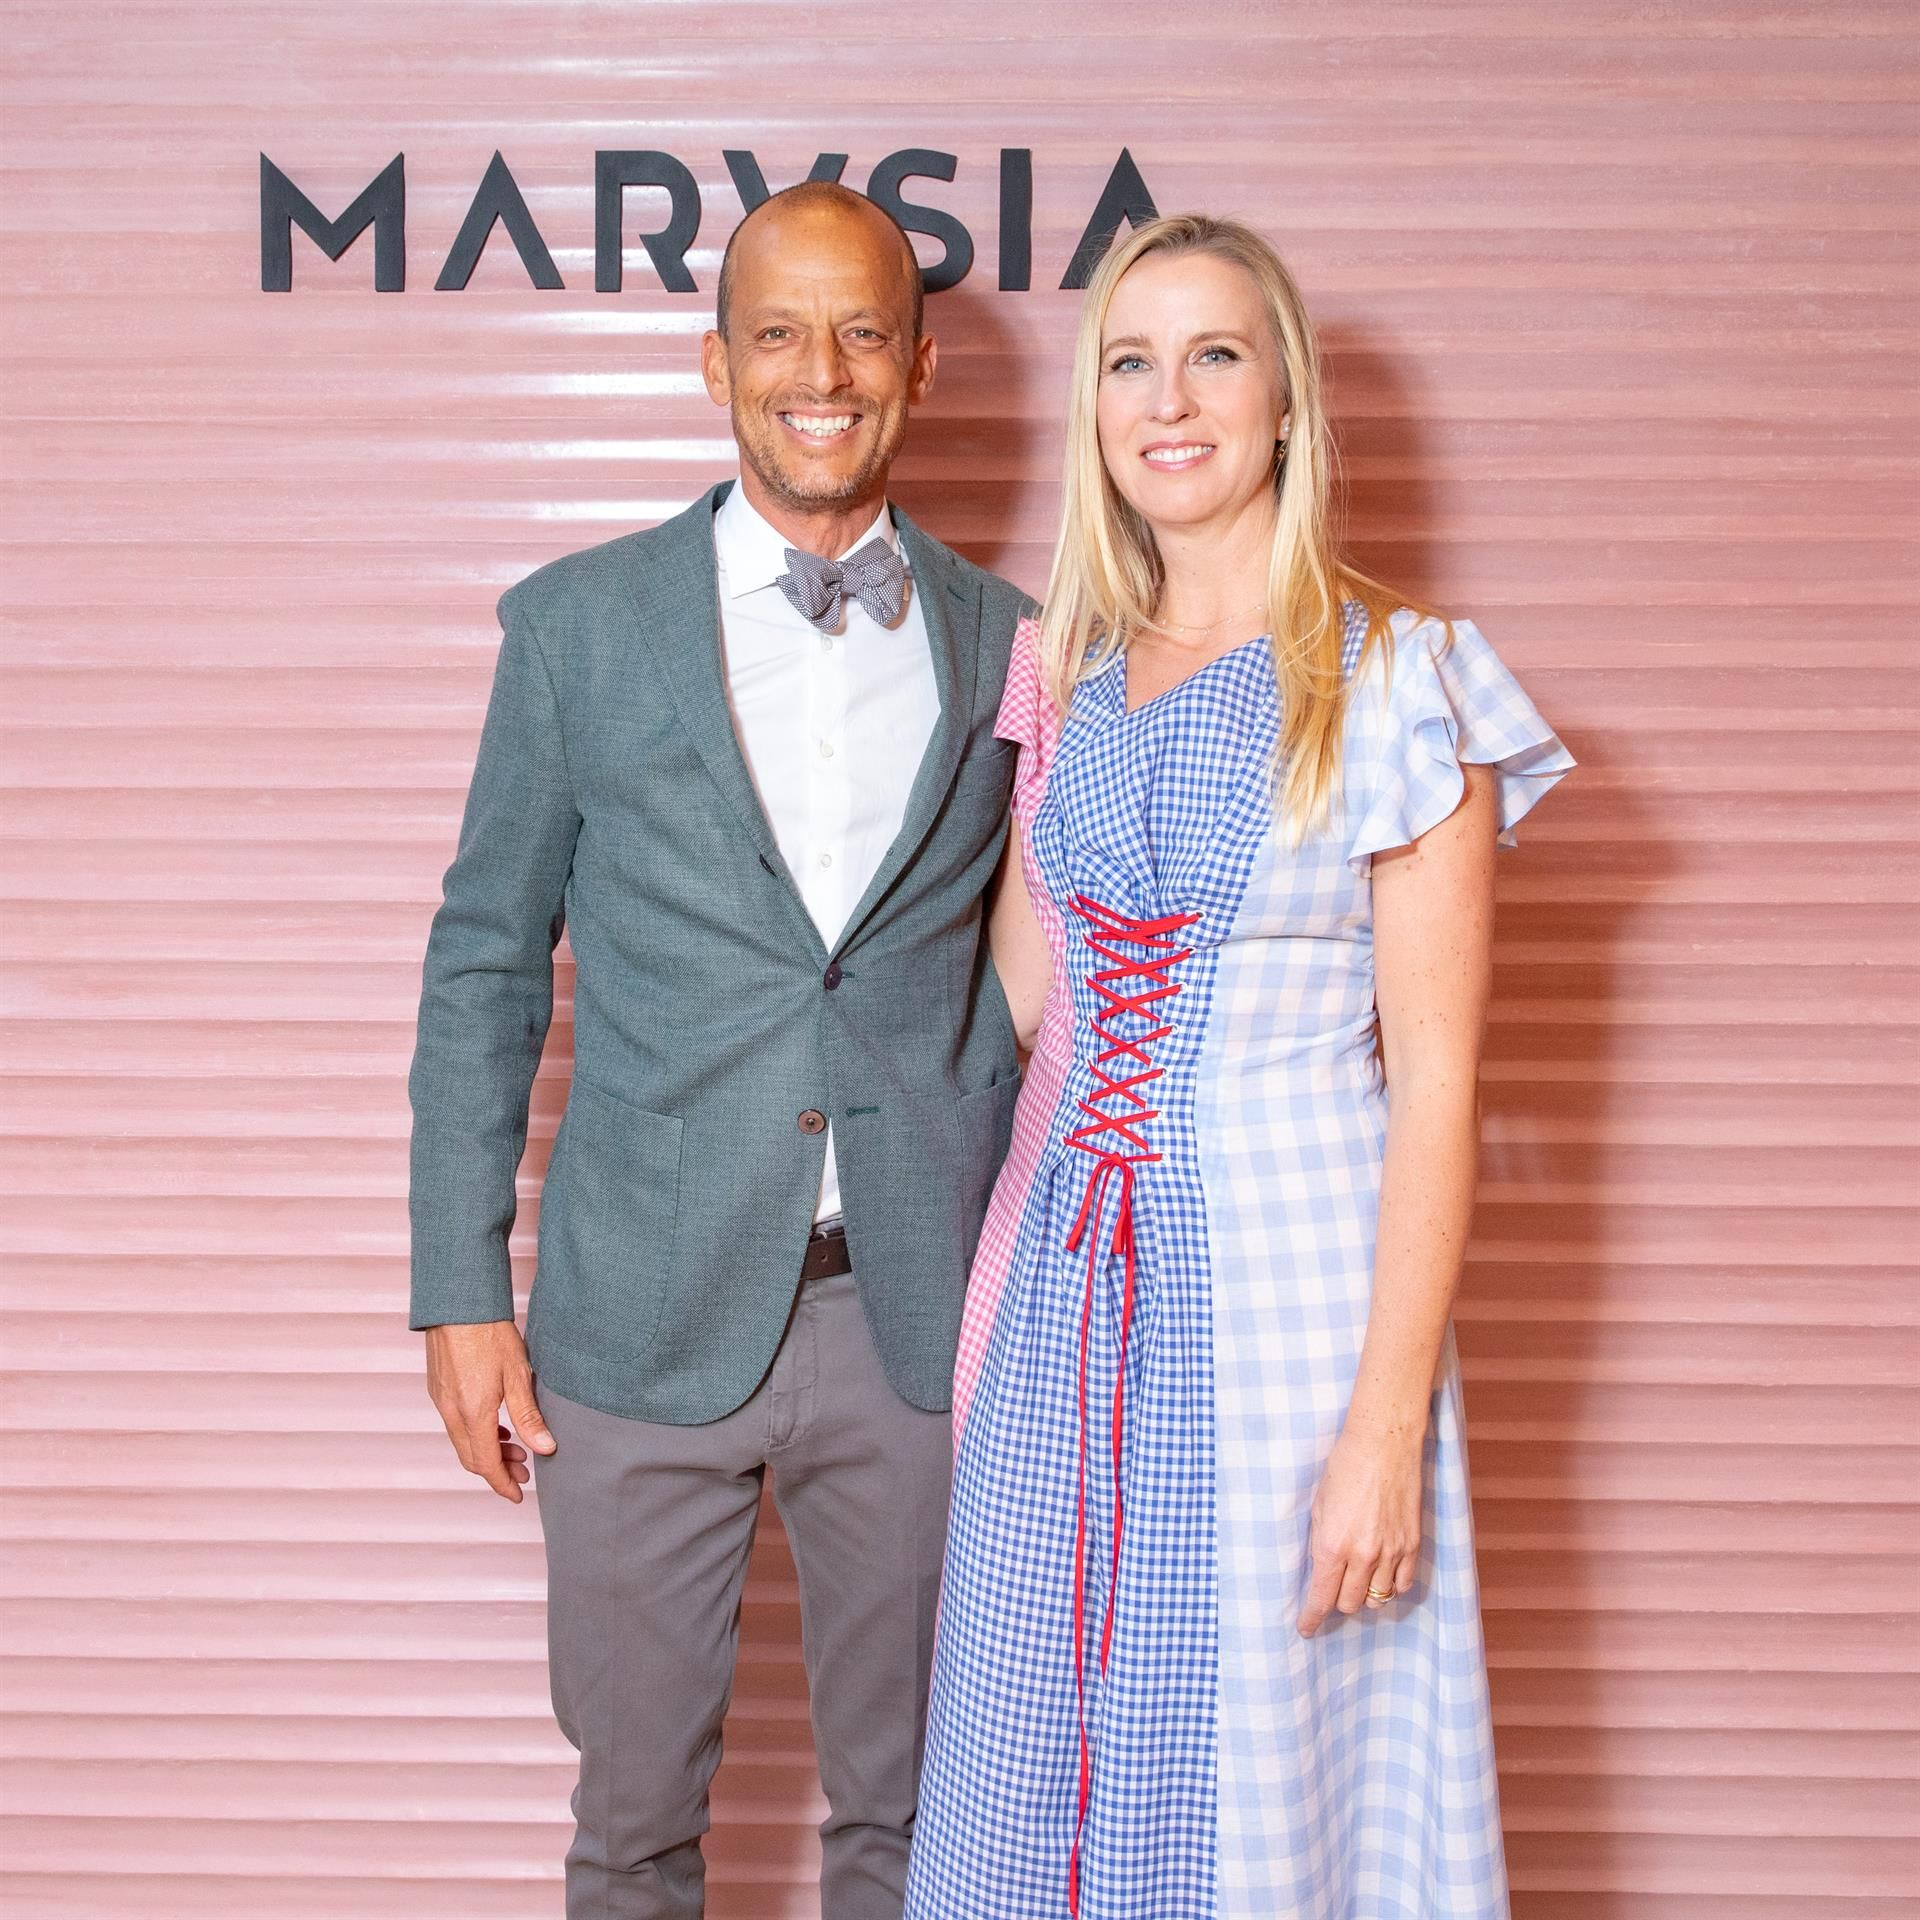 Nathaniel Reeves and Marysia Dobrzanska Reeves Nathaniel Reeves and Marysia Dobrzanska Reeves celebrate the opening of the Marysia Soho boutique on April 4 in New York City.